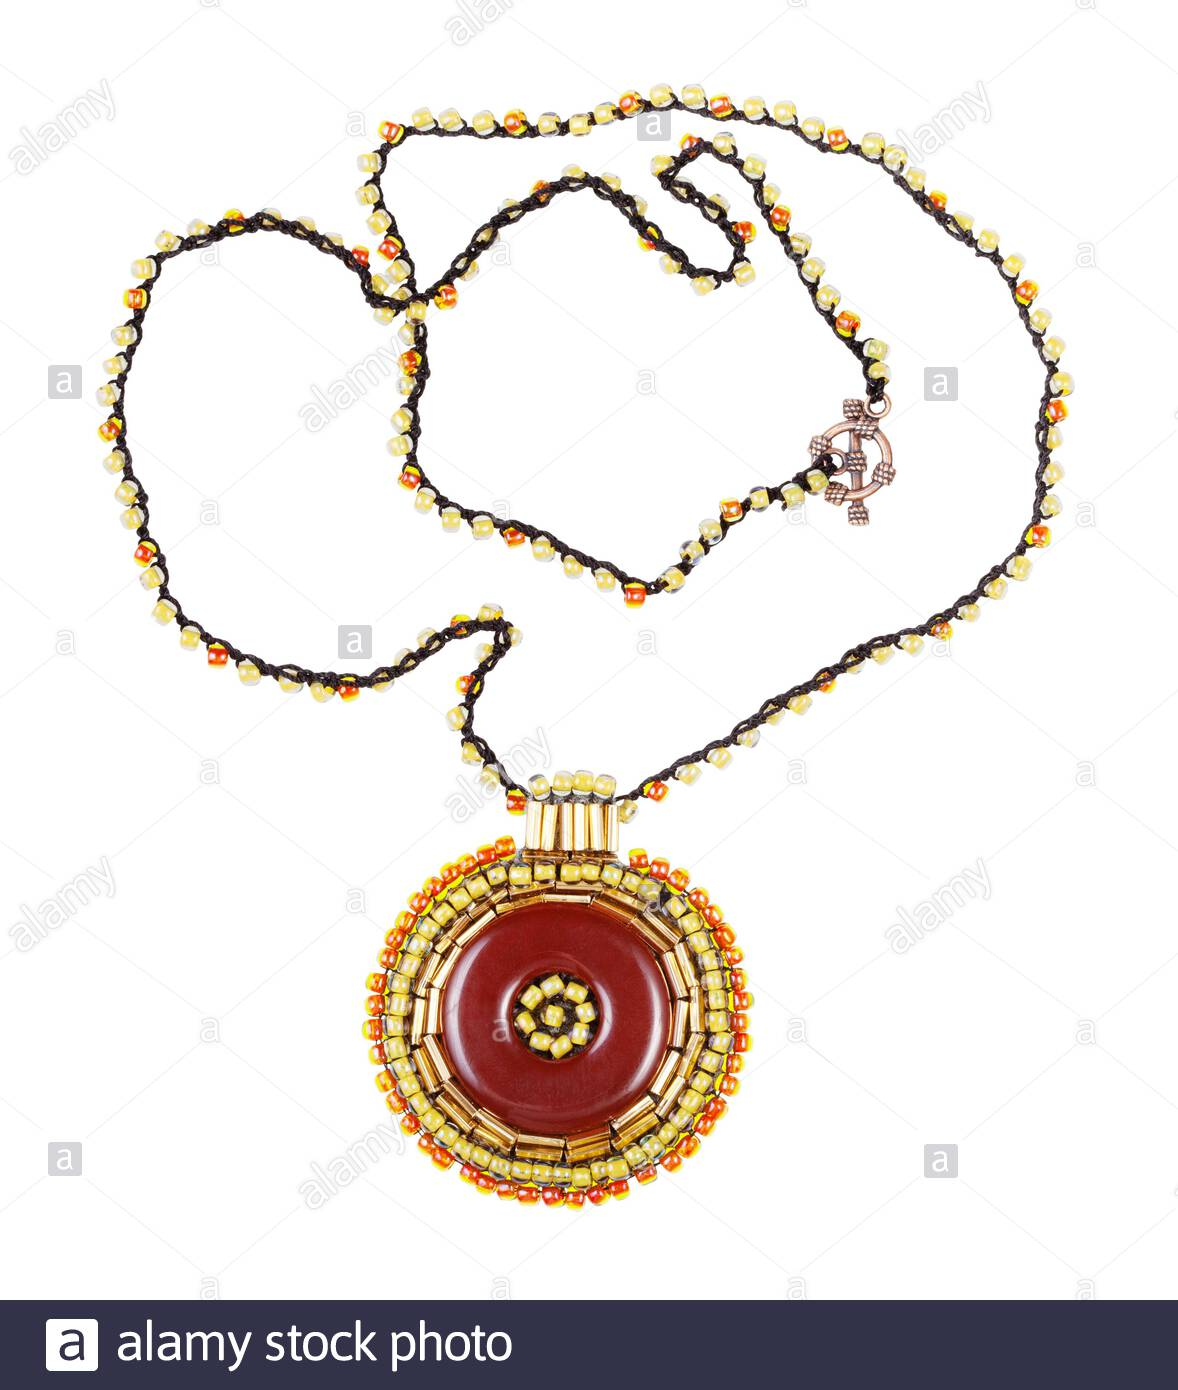 Embroidered Medallion High Resolution Stock Photography And Images Alamy